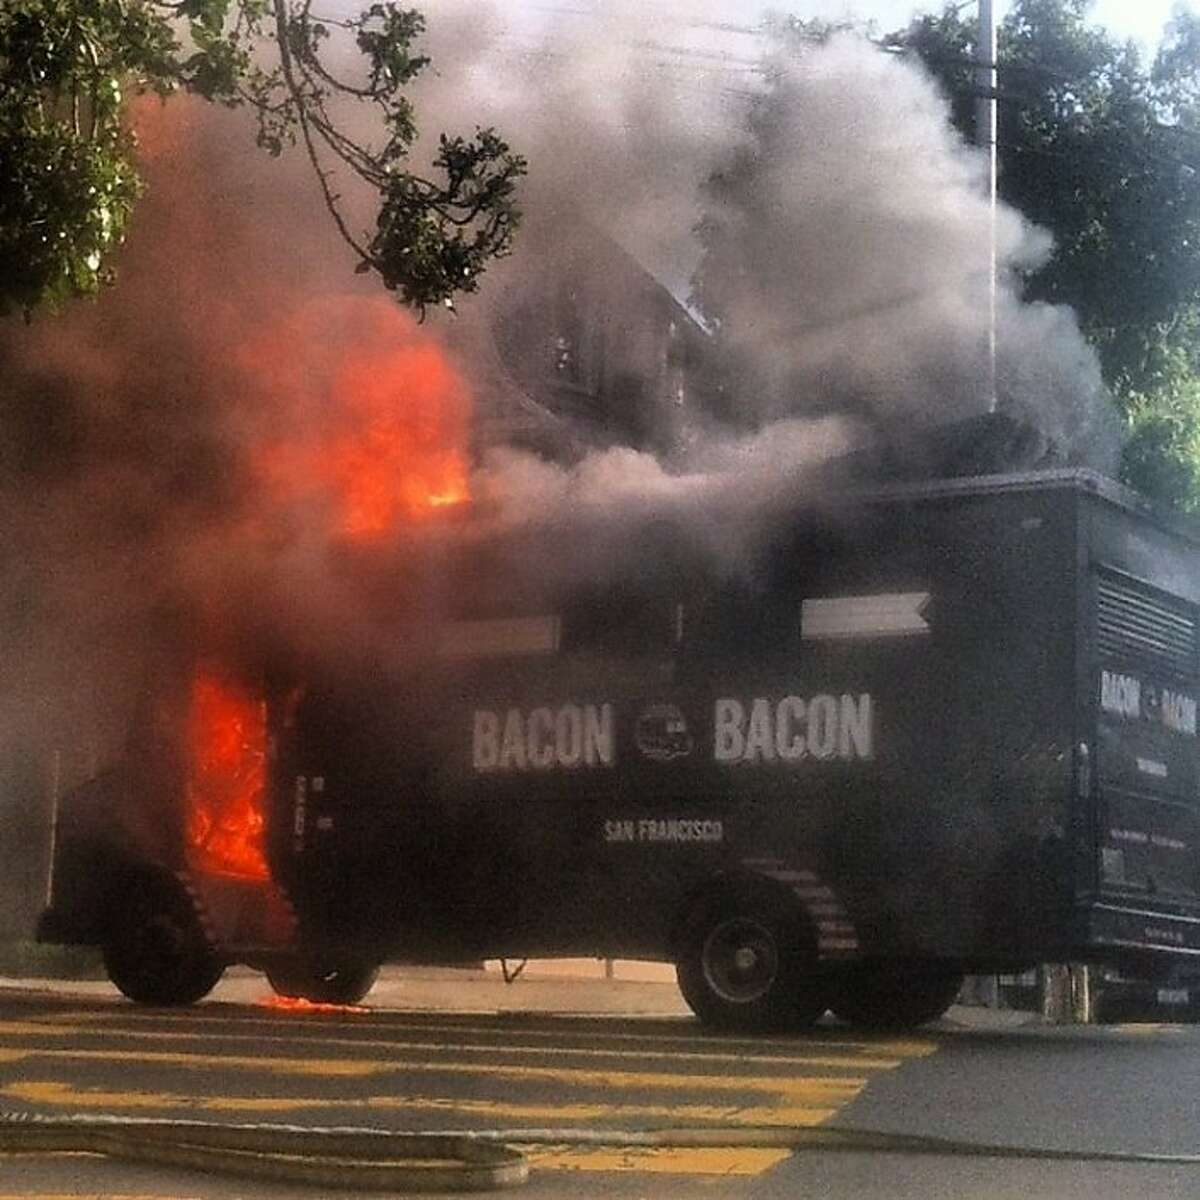 The Bacon Bacon truck catches on fire on Nov. 21, 2012 in San Francisco.